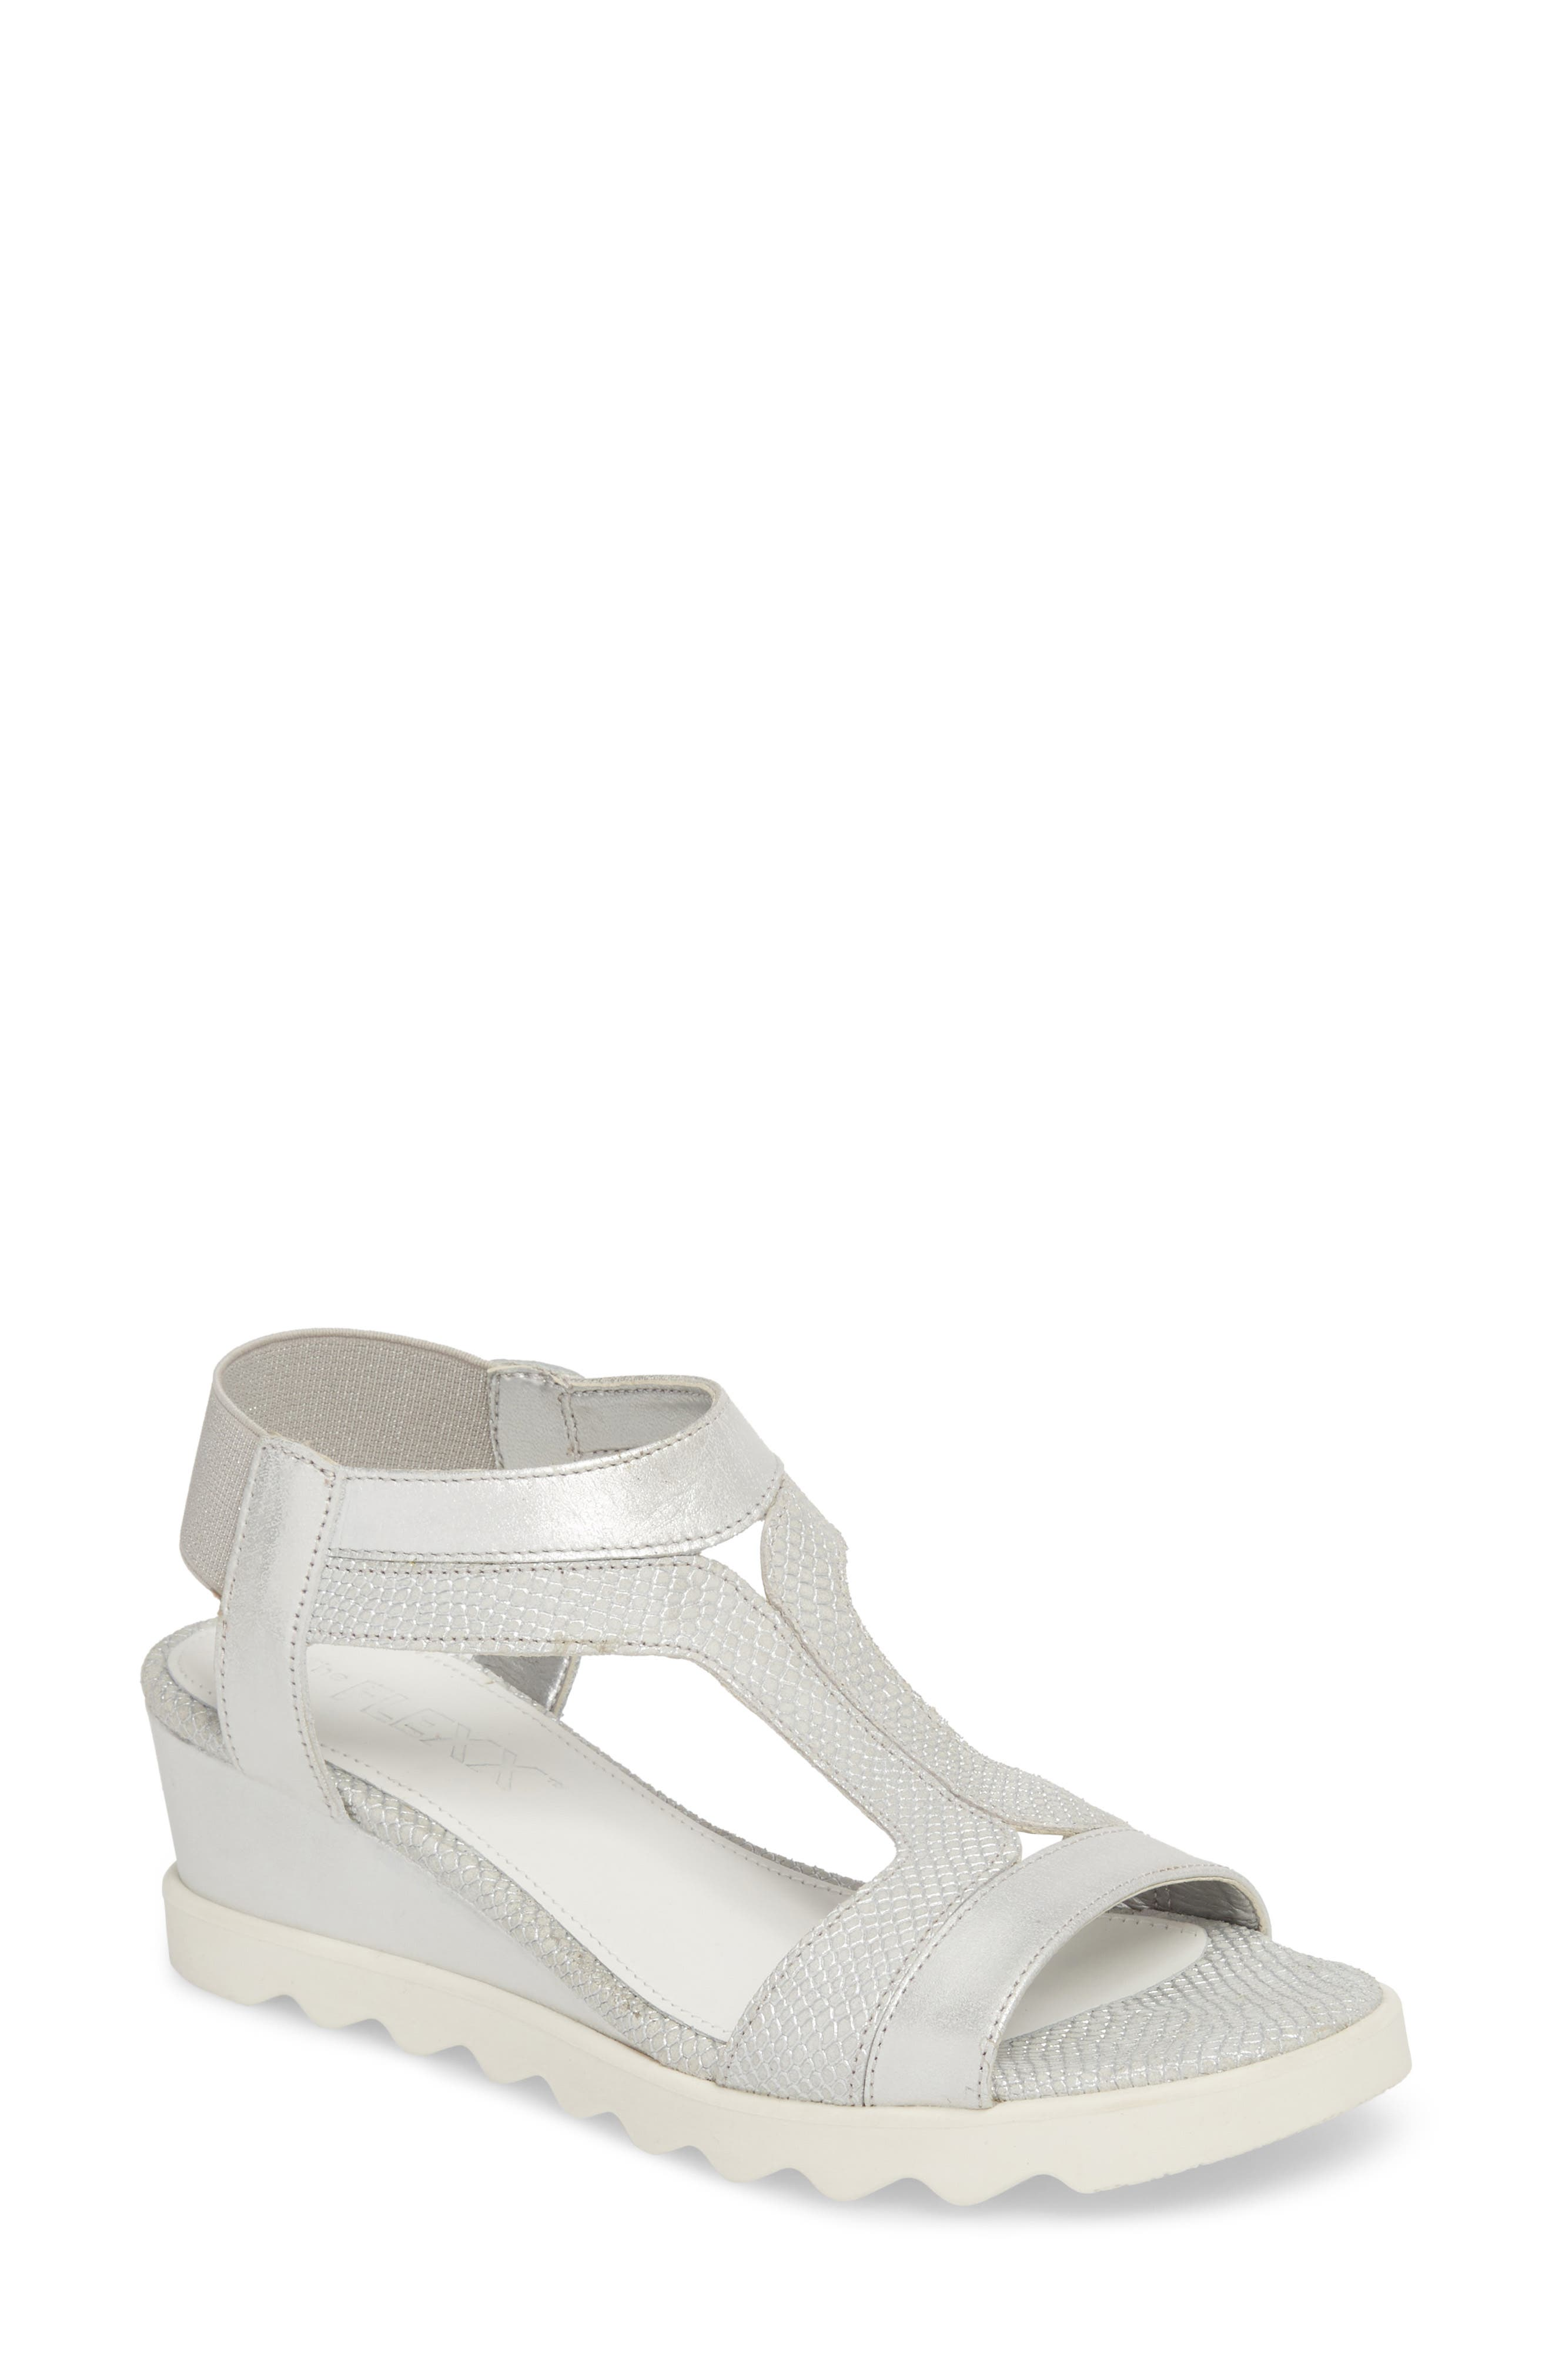 Give A Hoot Wedge Sandal,                         Main,                         color, Silver Leather